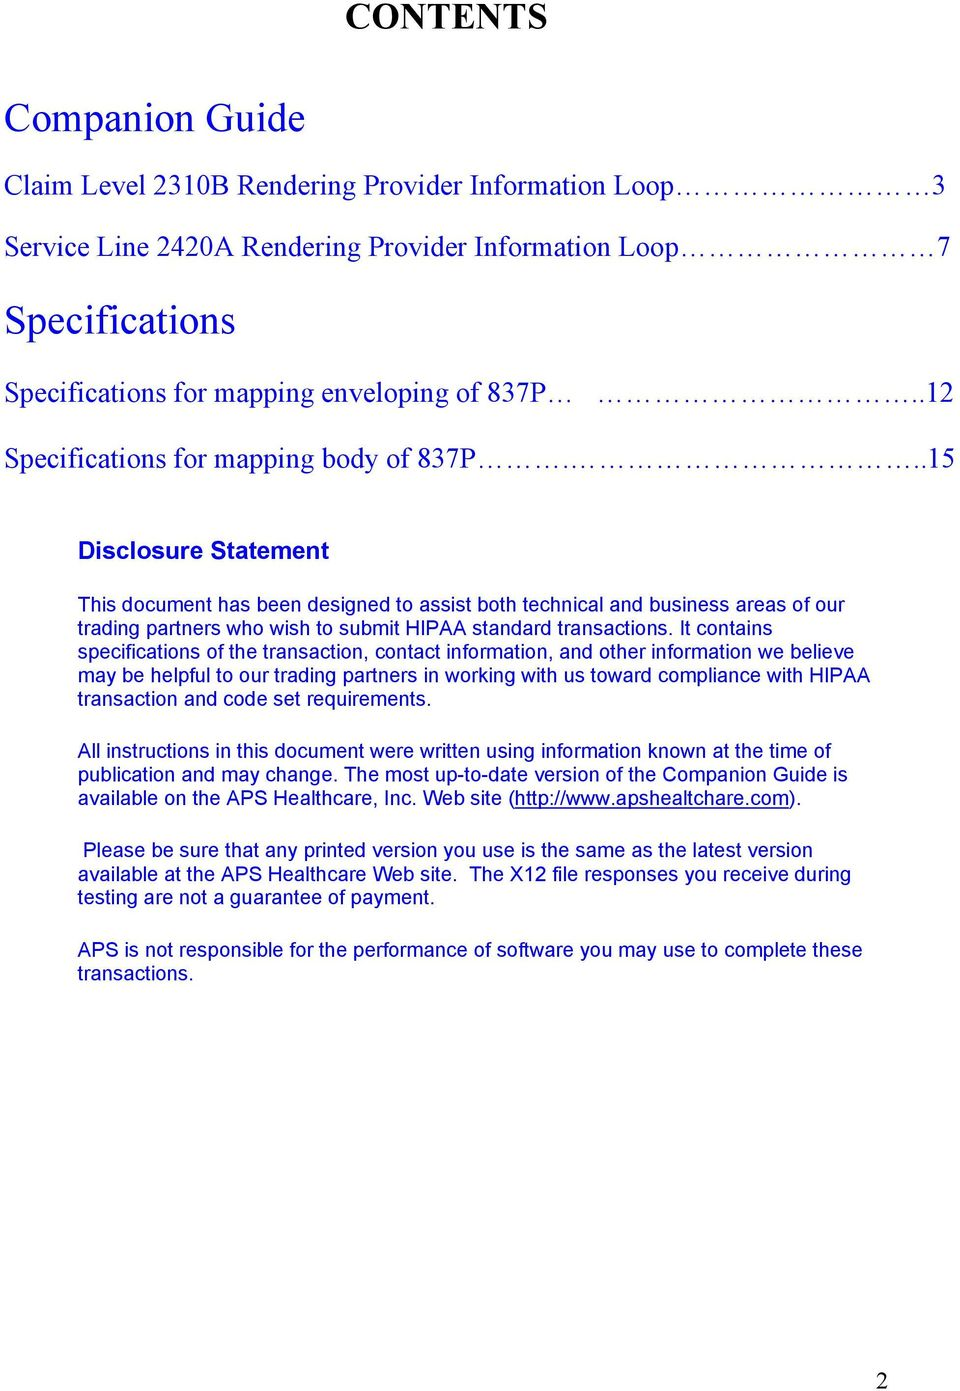 837 Professional EDI Specifications & Companion Guide - PDF